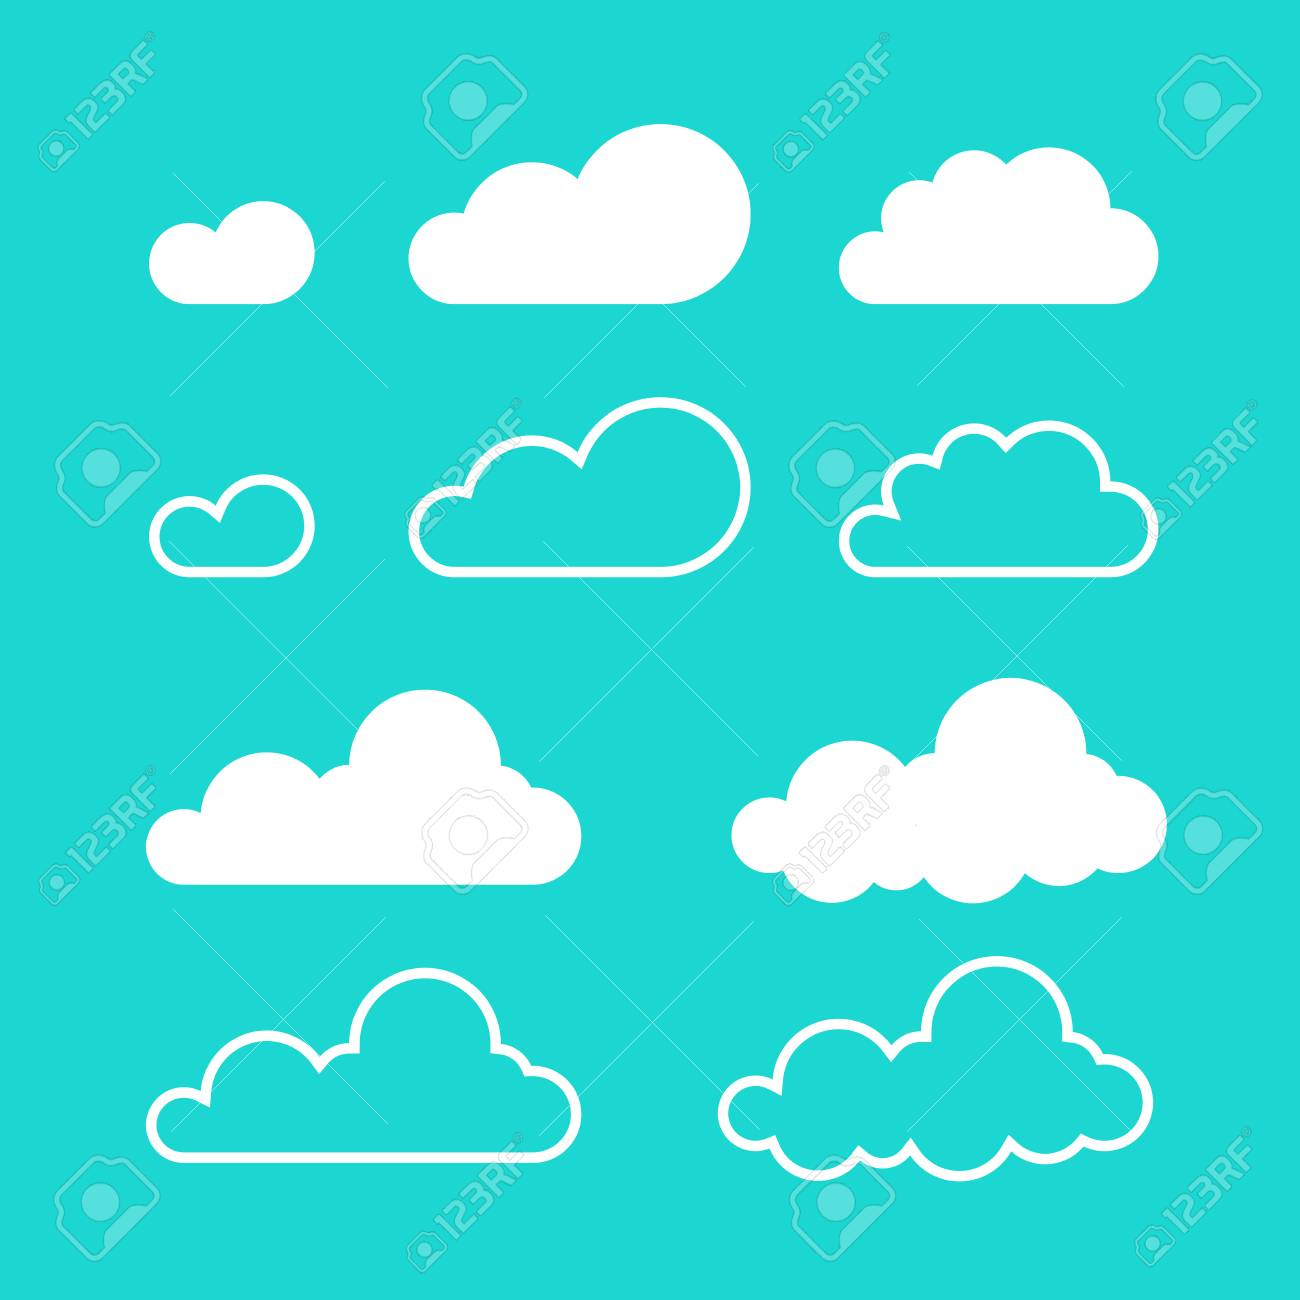 Clouds Vector Isolated On Blue Sky Background Flat Cartoon Cloud Set Collection Of Line